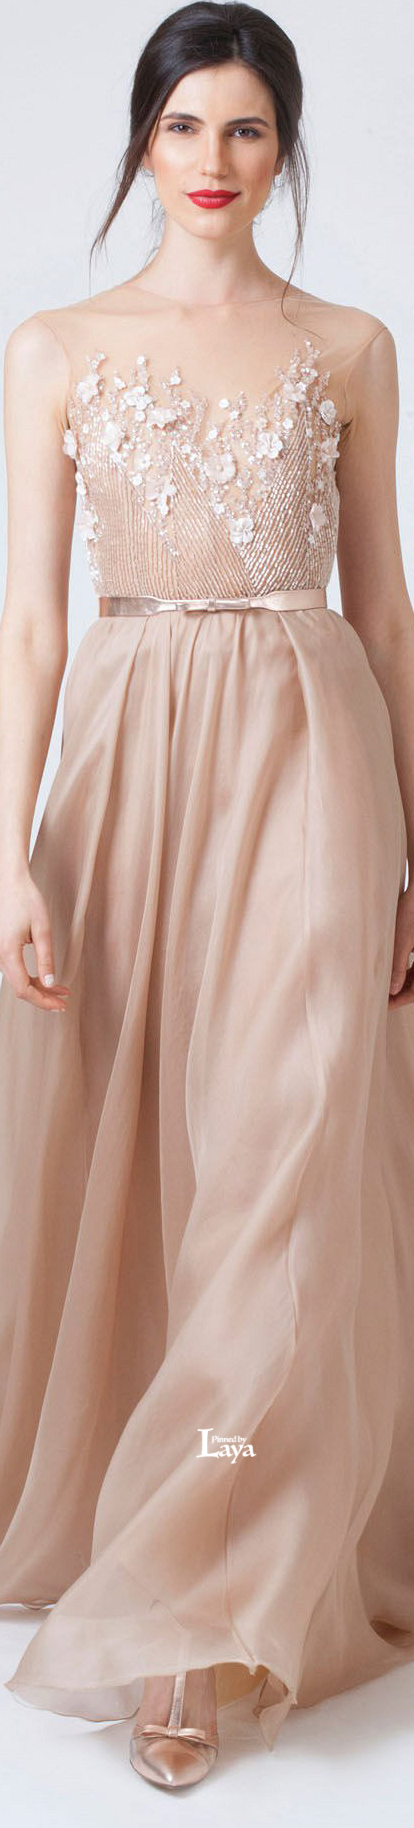 ♔LAYA♔ABED MAHFOUZ S/S 2015 COUTURE♔